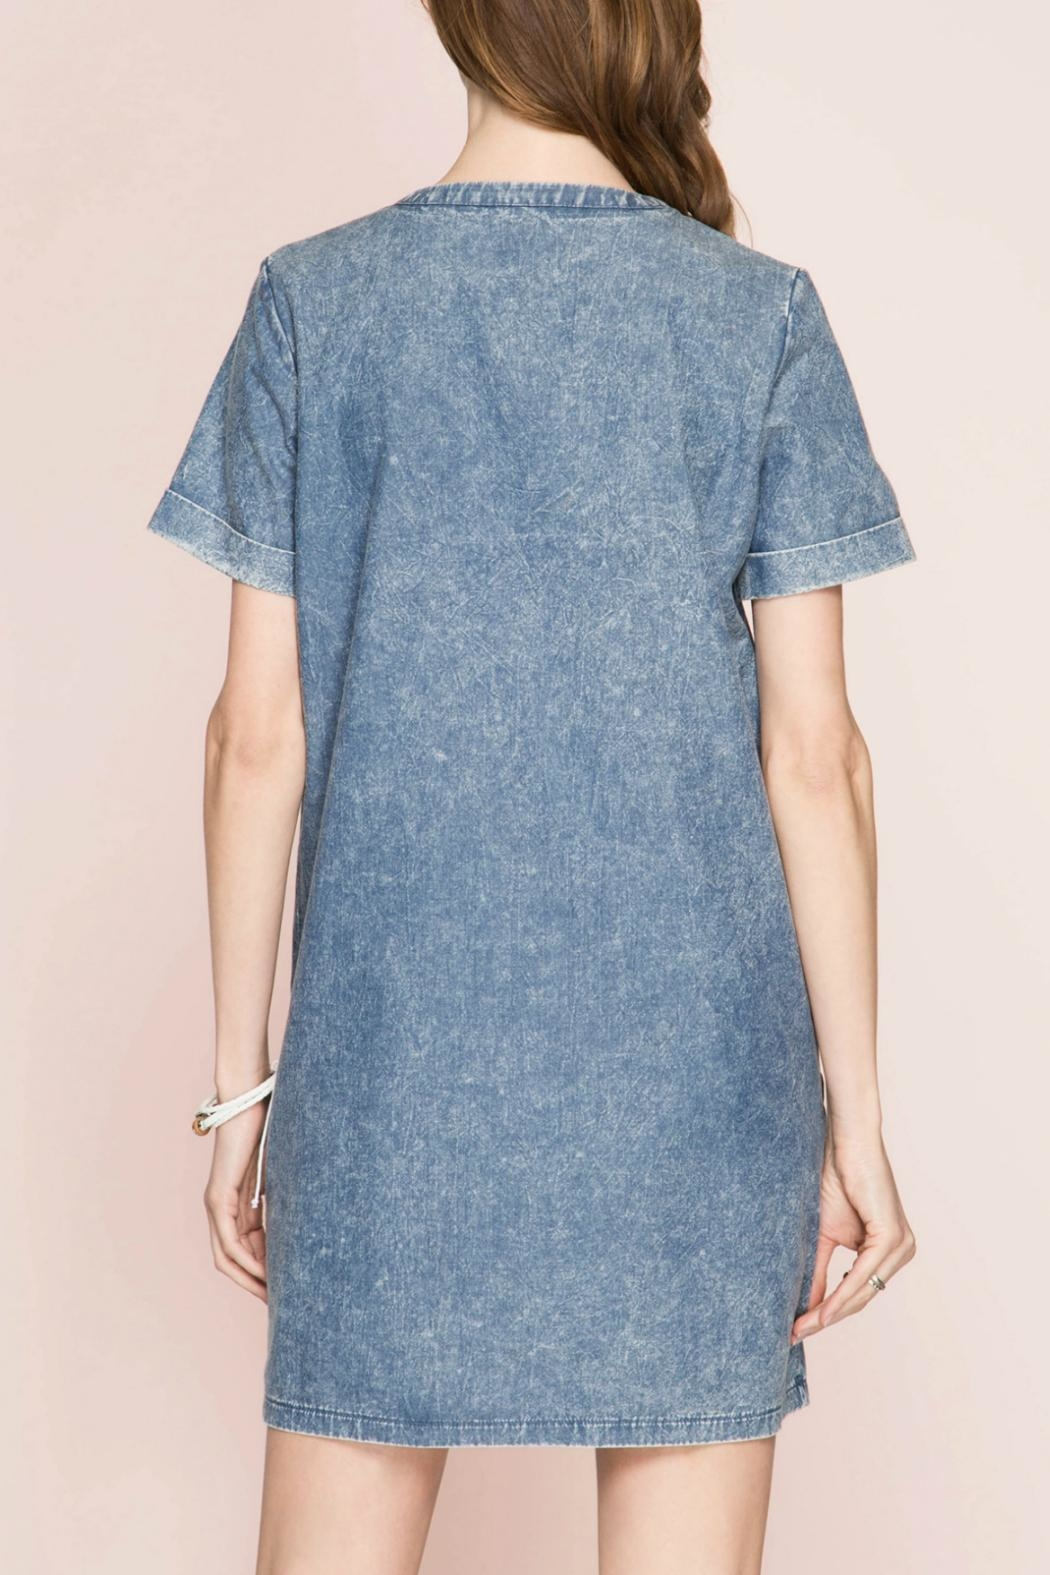 She + Sky Lace Up Denim Dress - Side Cropped Image